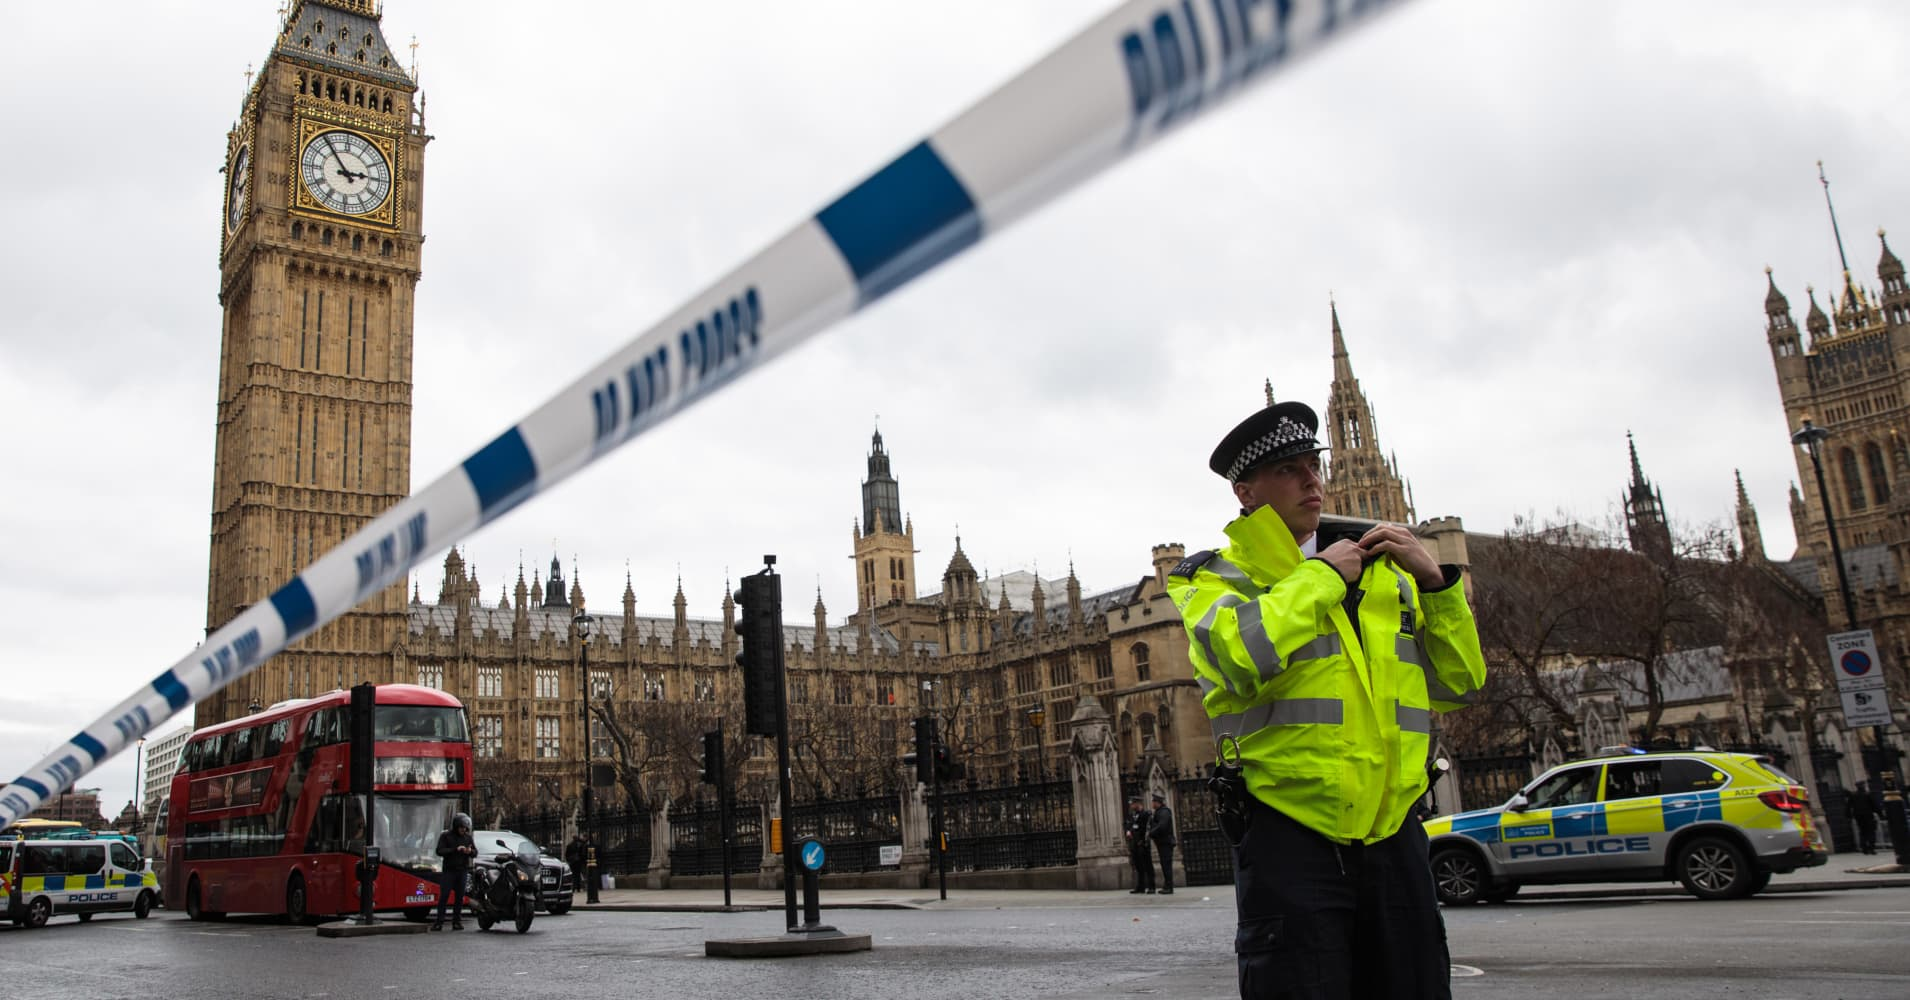 'Sick and depraved': World reacts to London terror attack